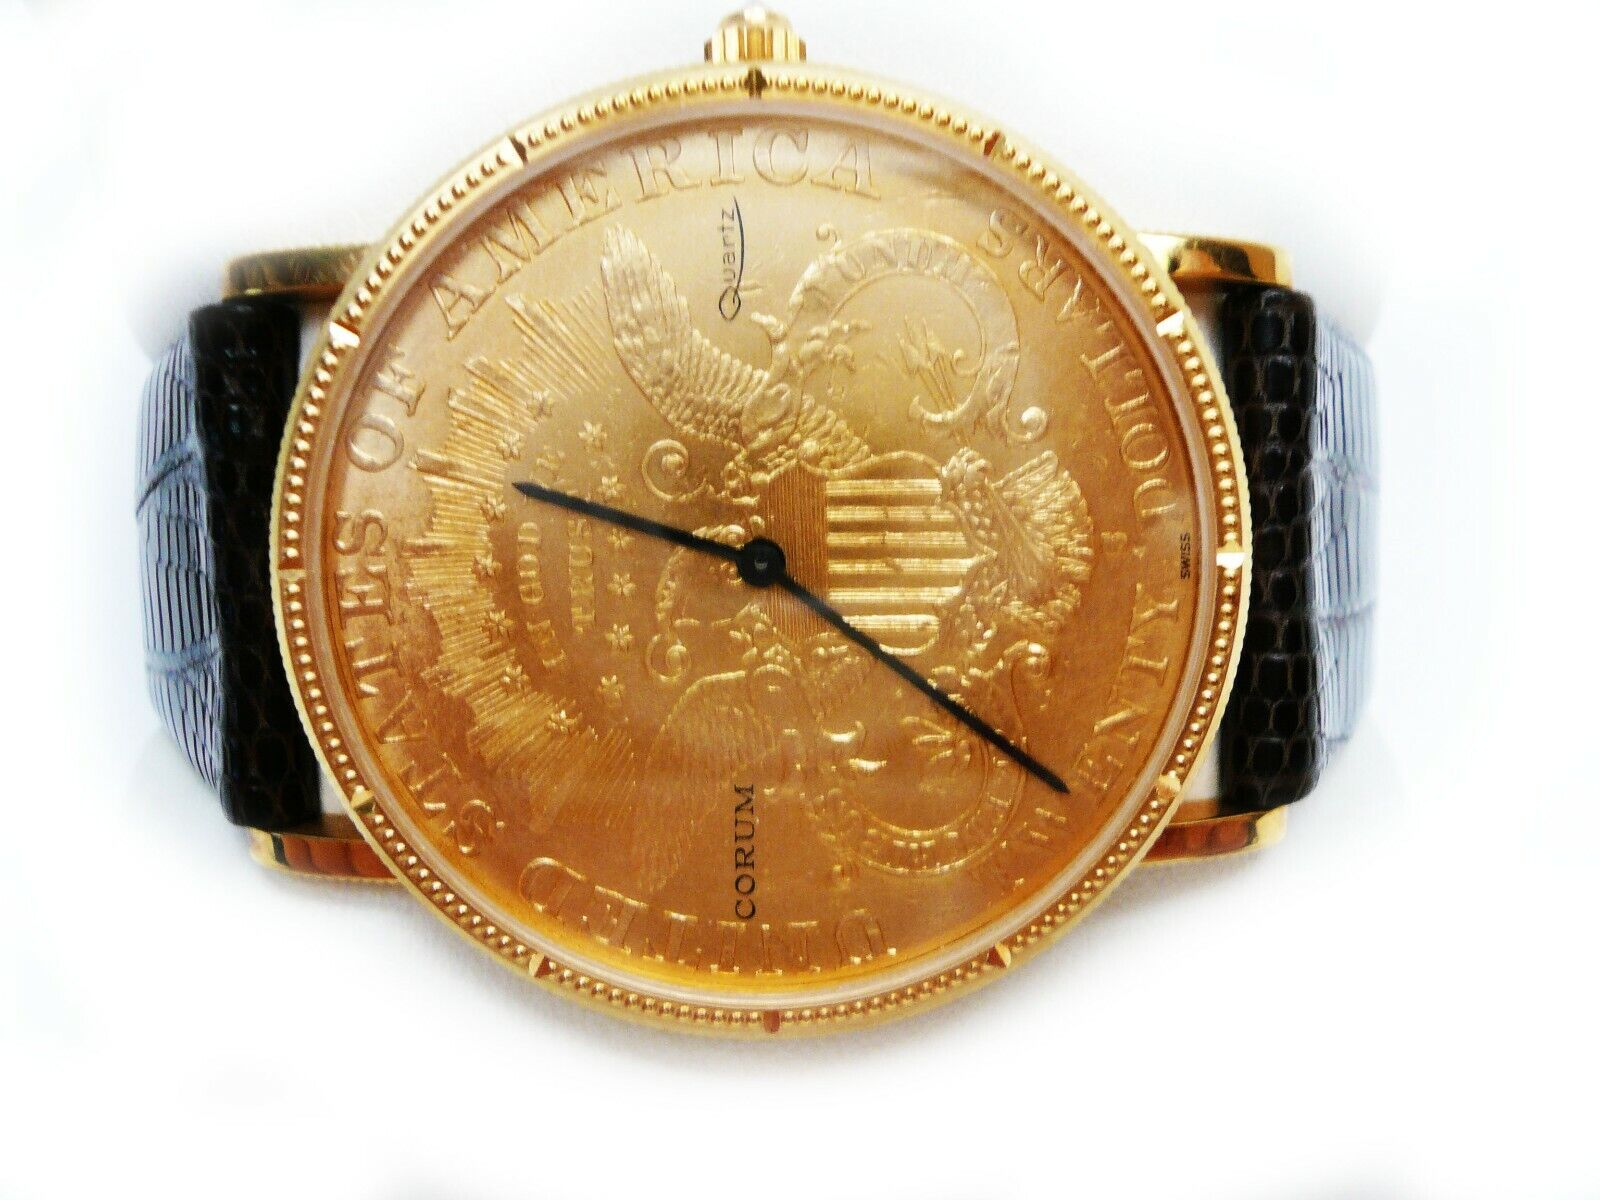 Corum 1900 $20 Dollar Yellow Gold Coin Double Eagle Quartz Watch - watch picture 1